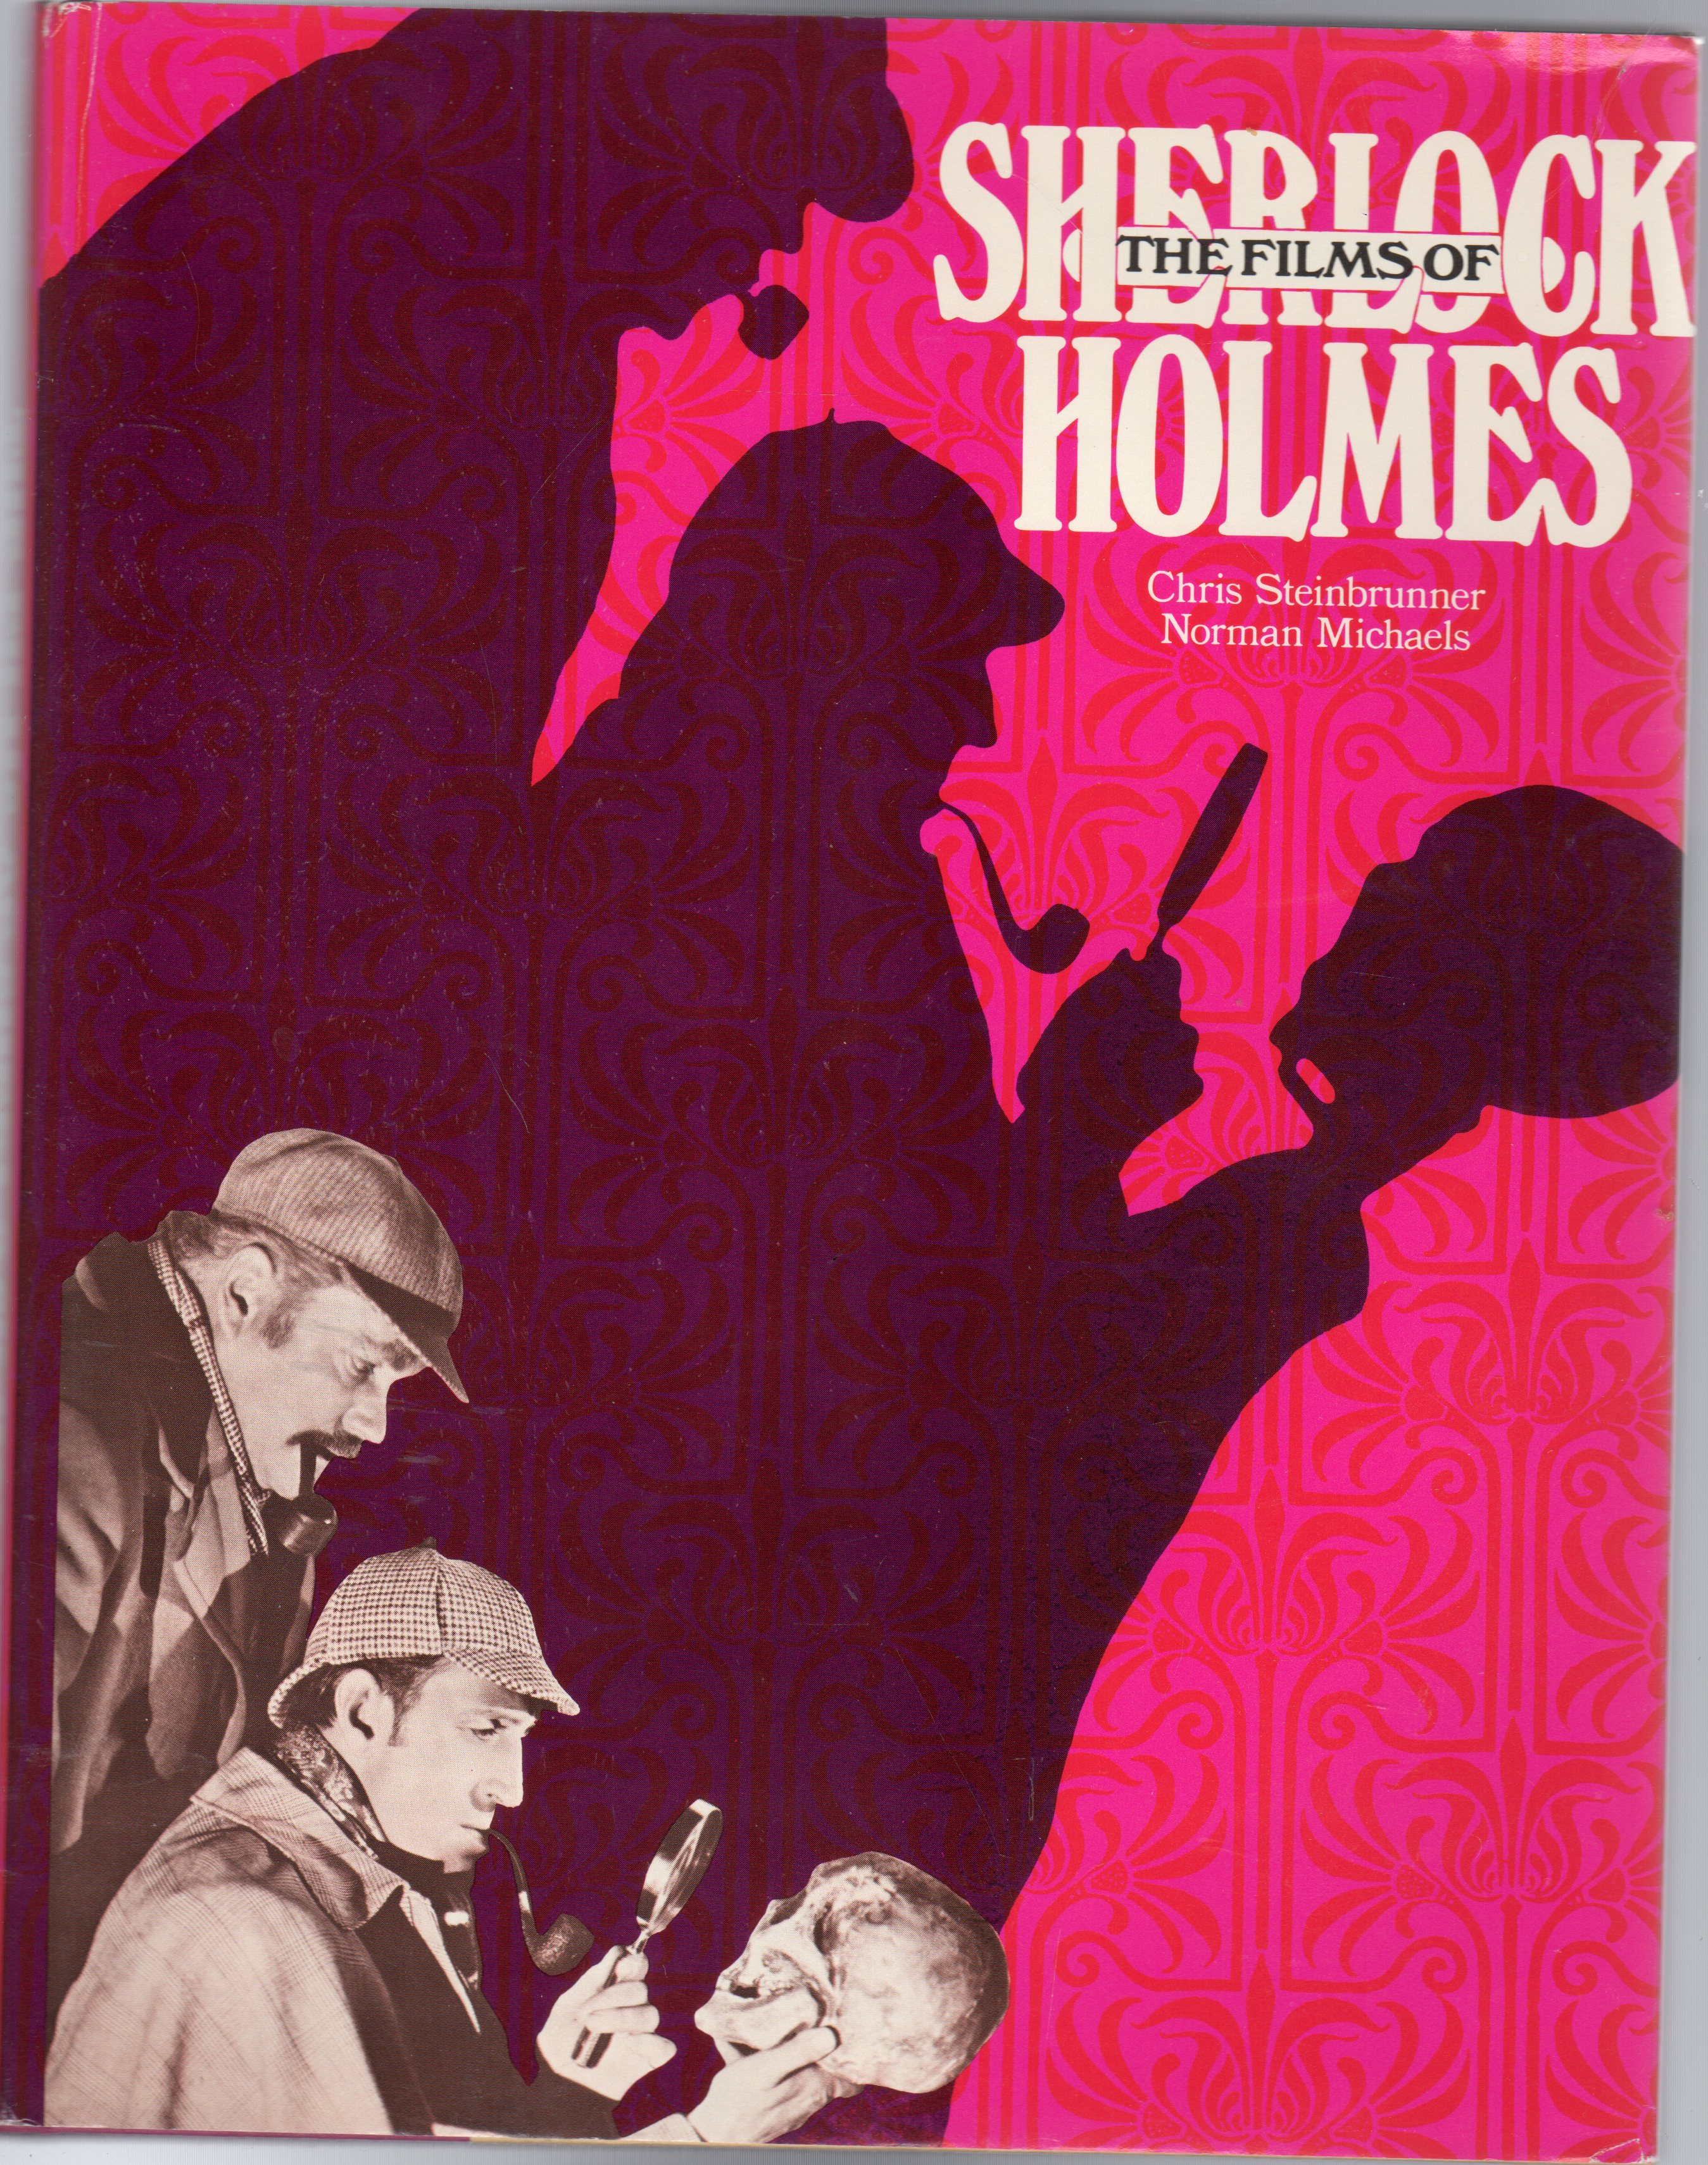 Image for The Films of Sherlock Holmes